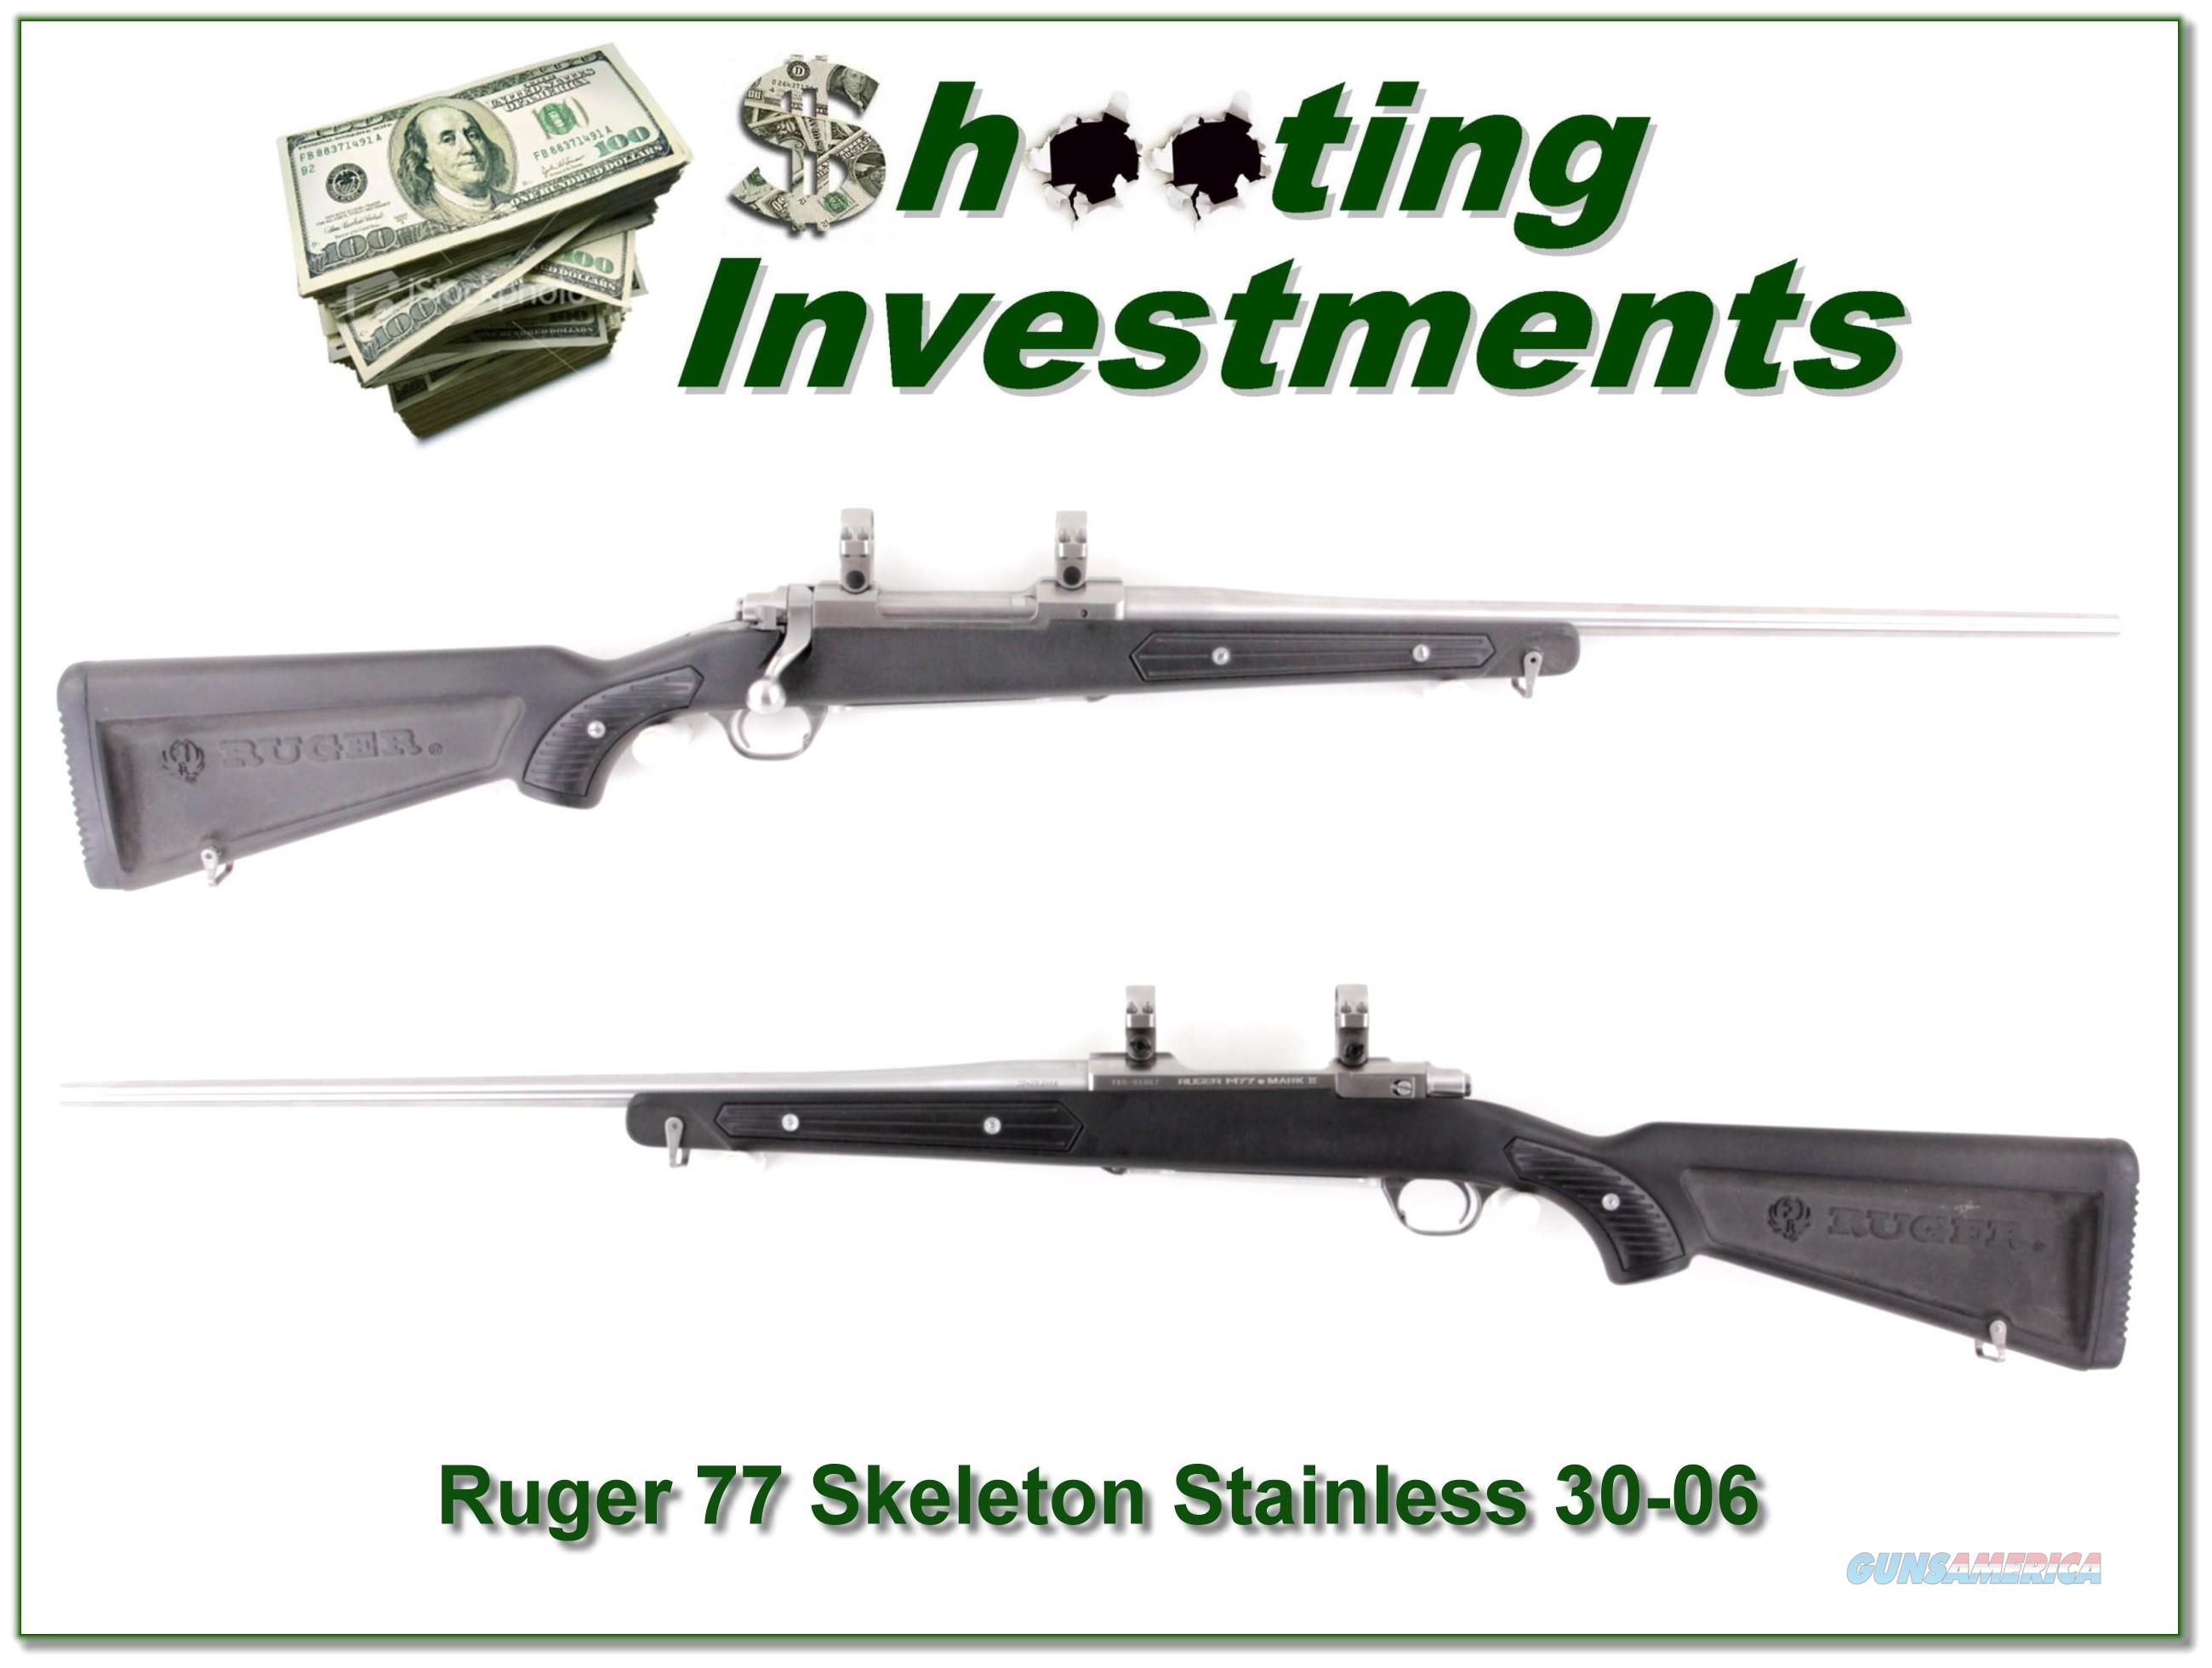 Ruger 77 All-Weather Stainless Skeleton 30-06 Exc Cond  Guns > Rifles > Ruger Rifles > Model 77